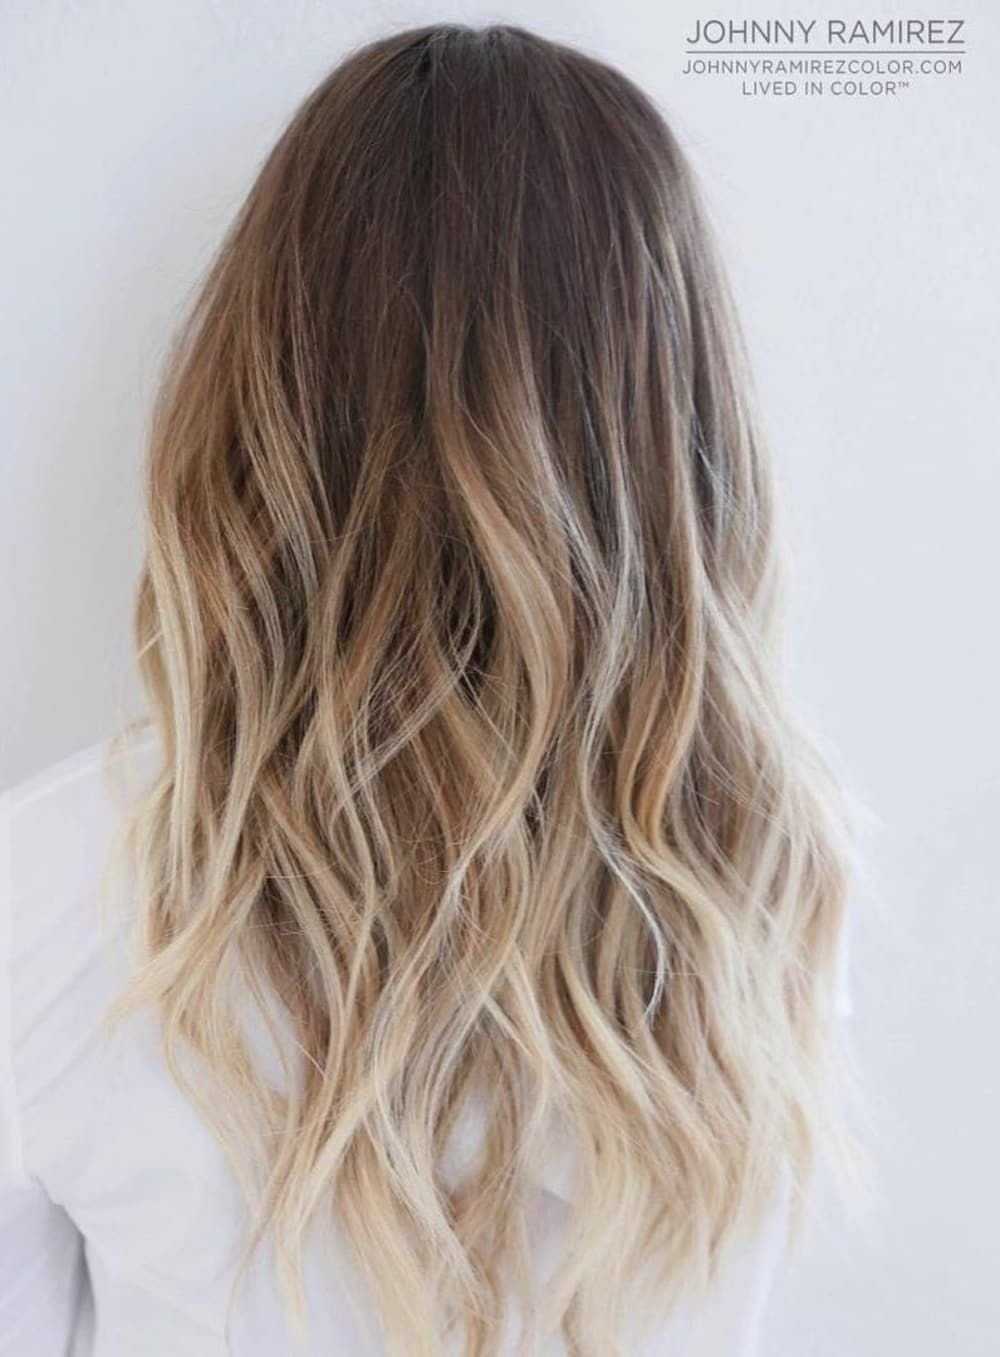 10 Amazing Brown And Blonde Hair Color Ideas 70 flattering balayage hair color ideas for 2018 blonde ombre hair 2